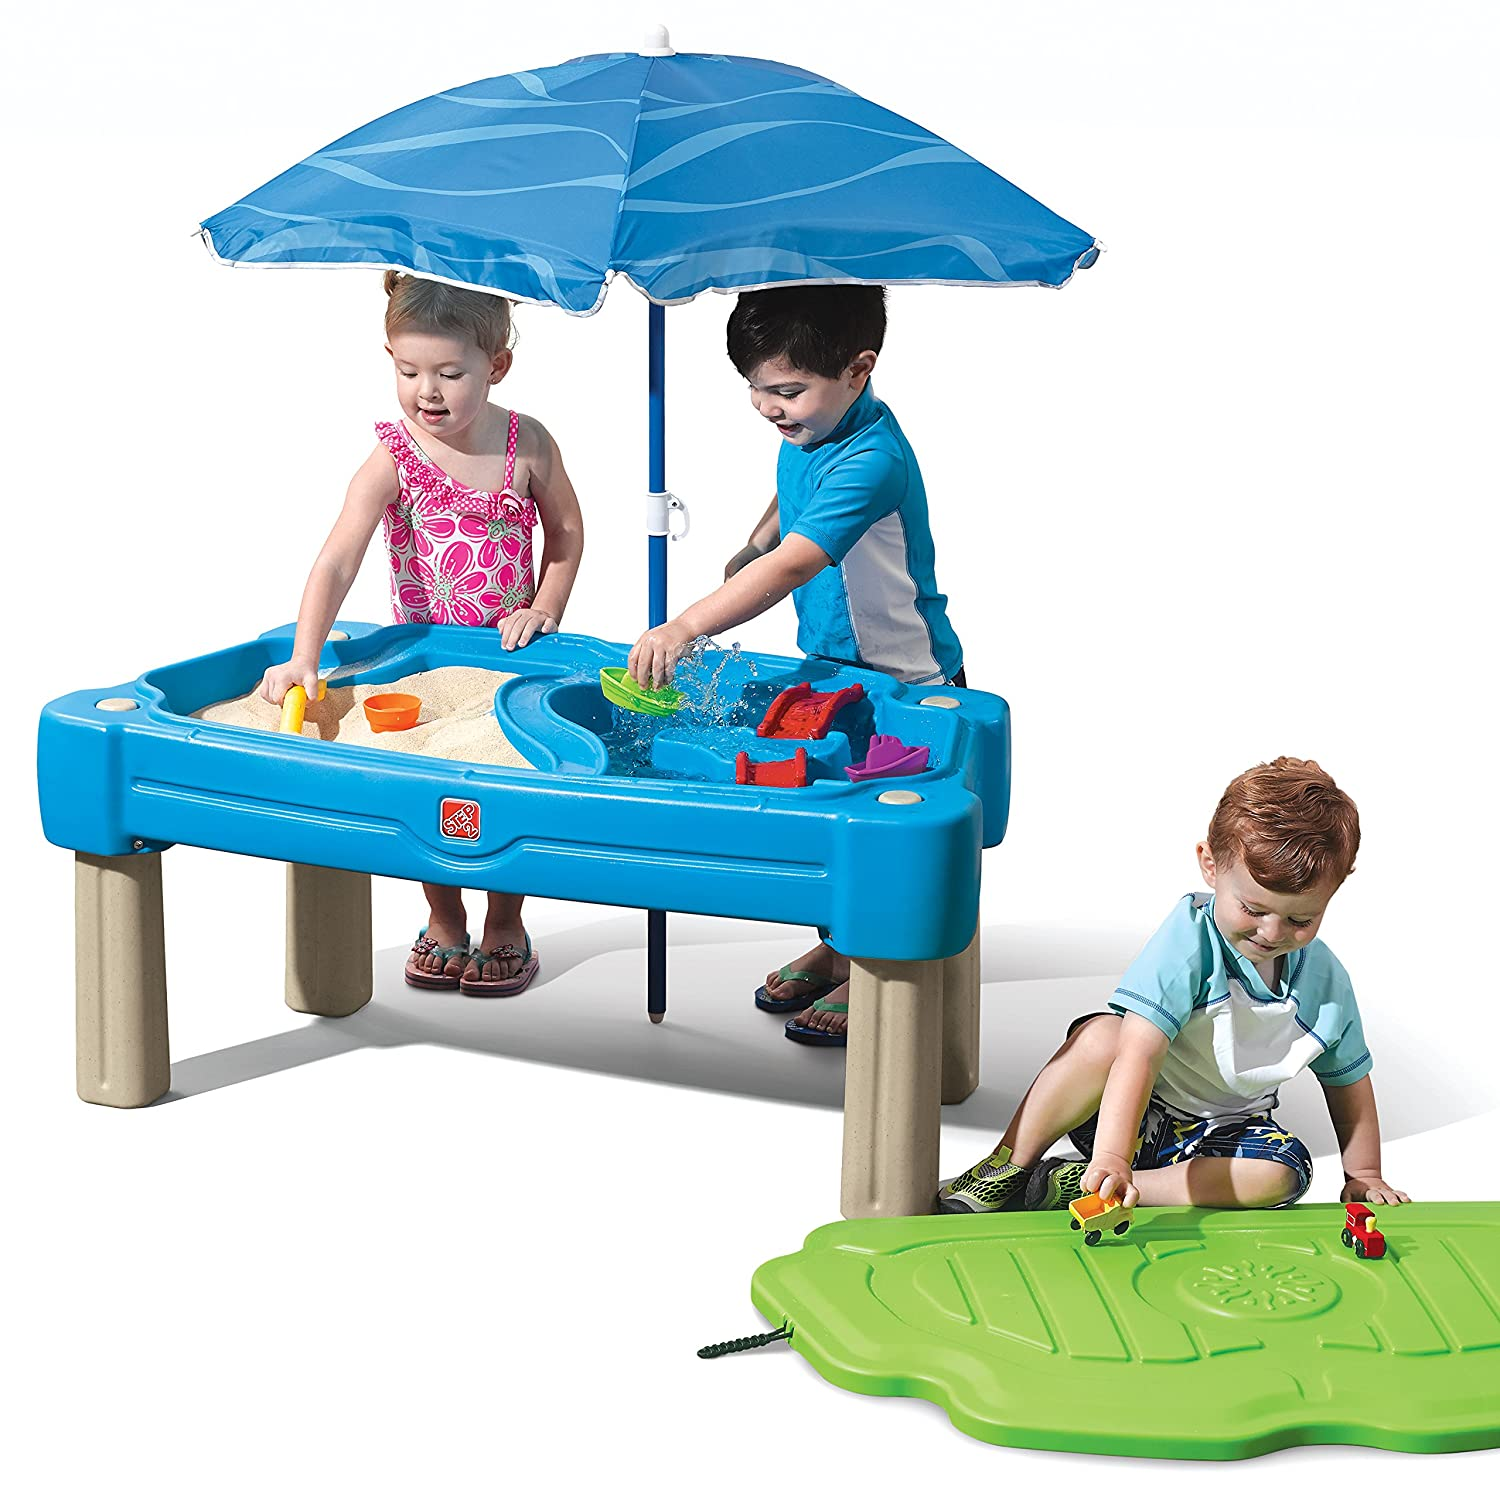 Table Top Toys For Preschoolers : Best toys for kids of the coolest sand and water